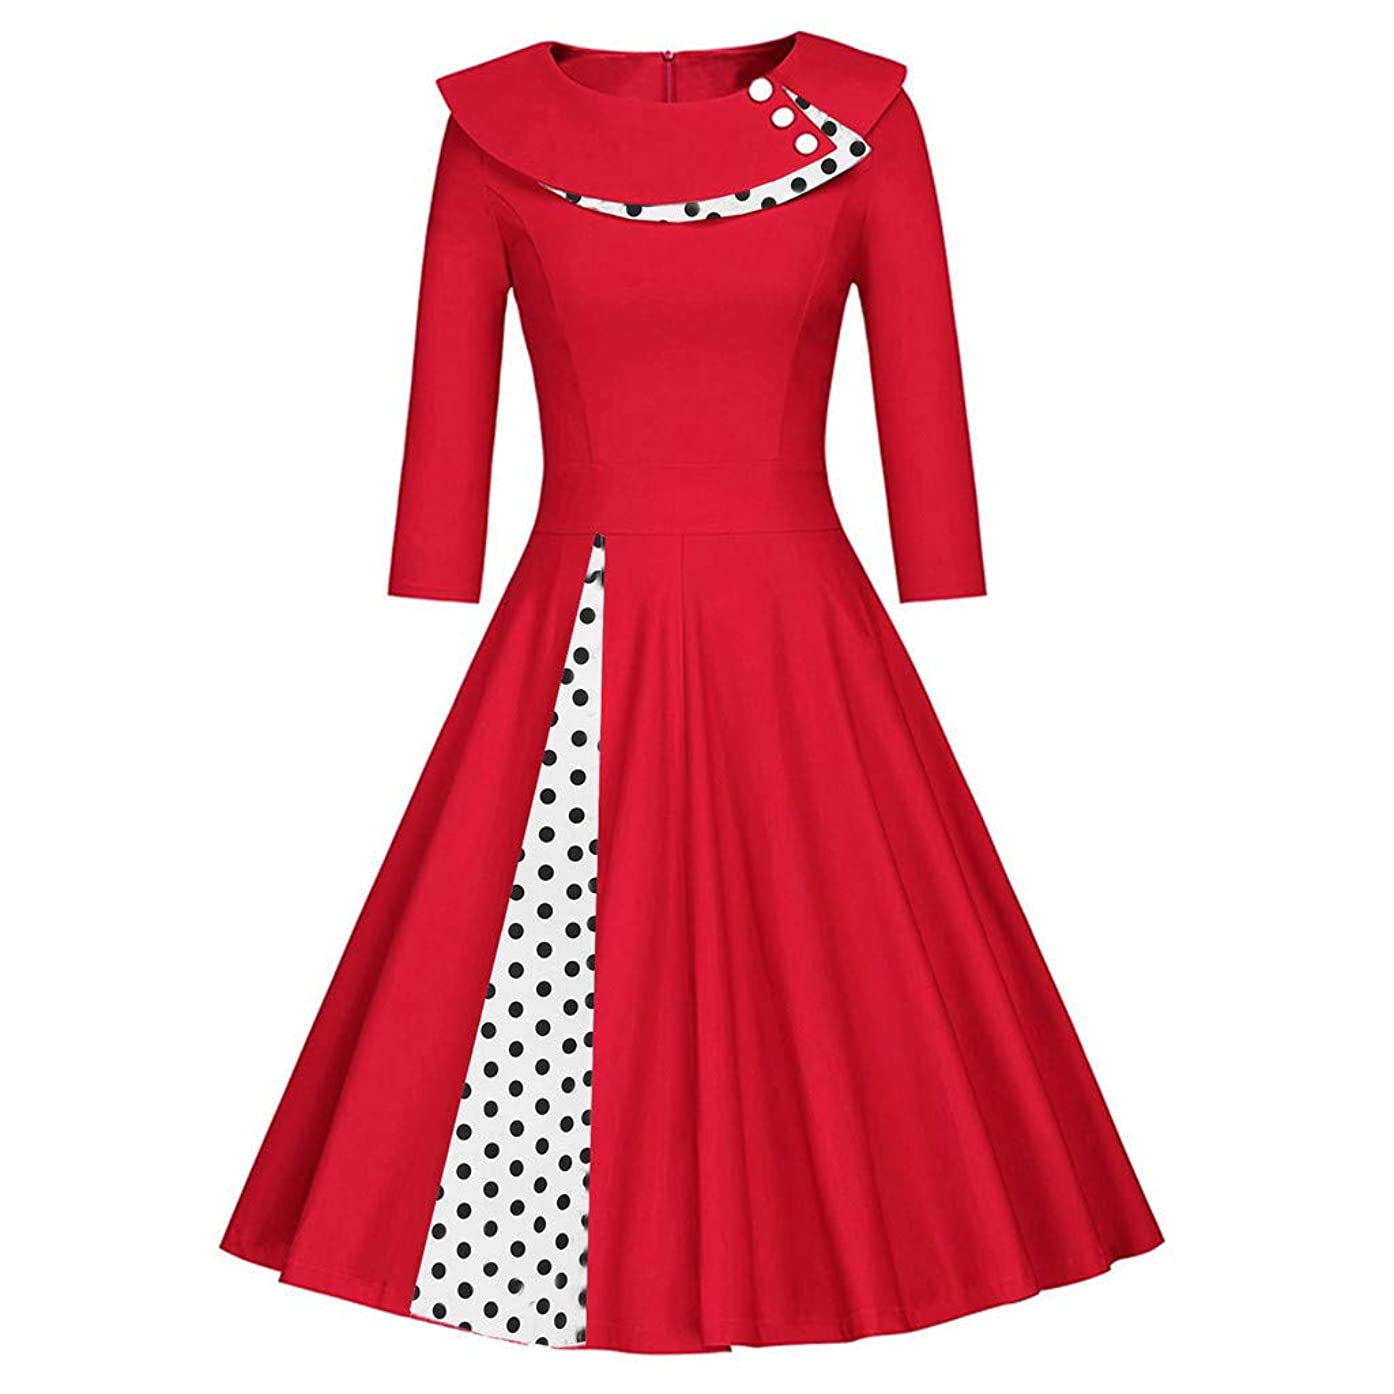 Women Summer Casual 1950s Vintage Dresses Swing Polka Dot Cocktail Prom Party Hepburn Dress